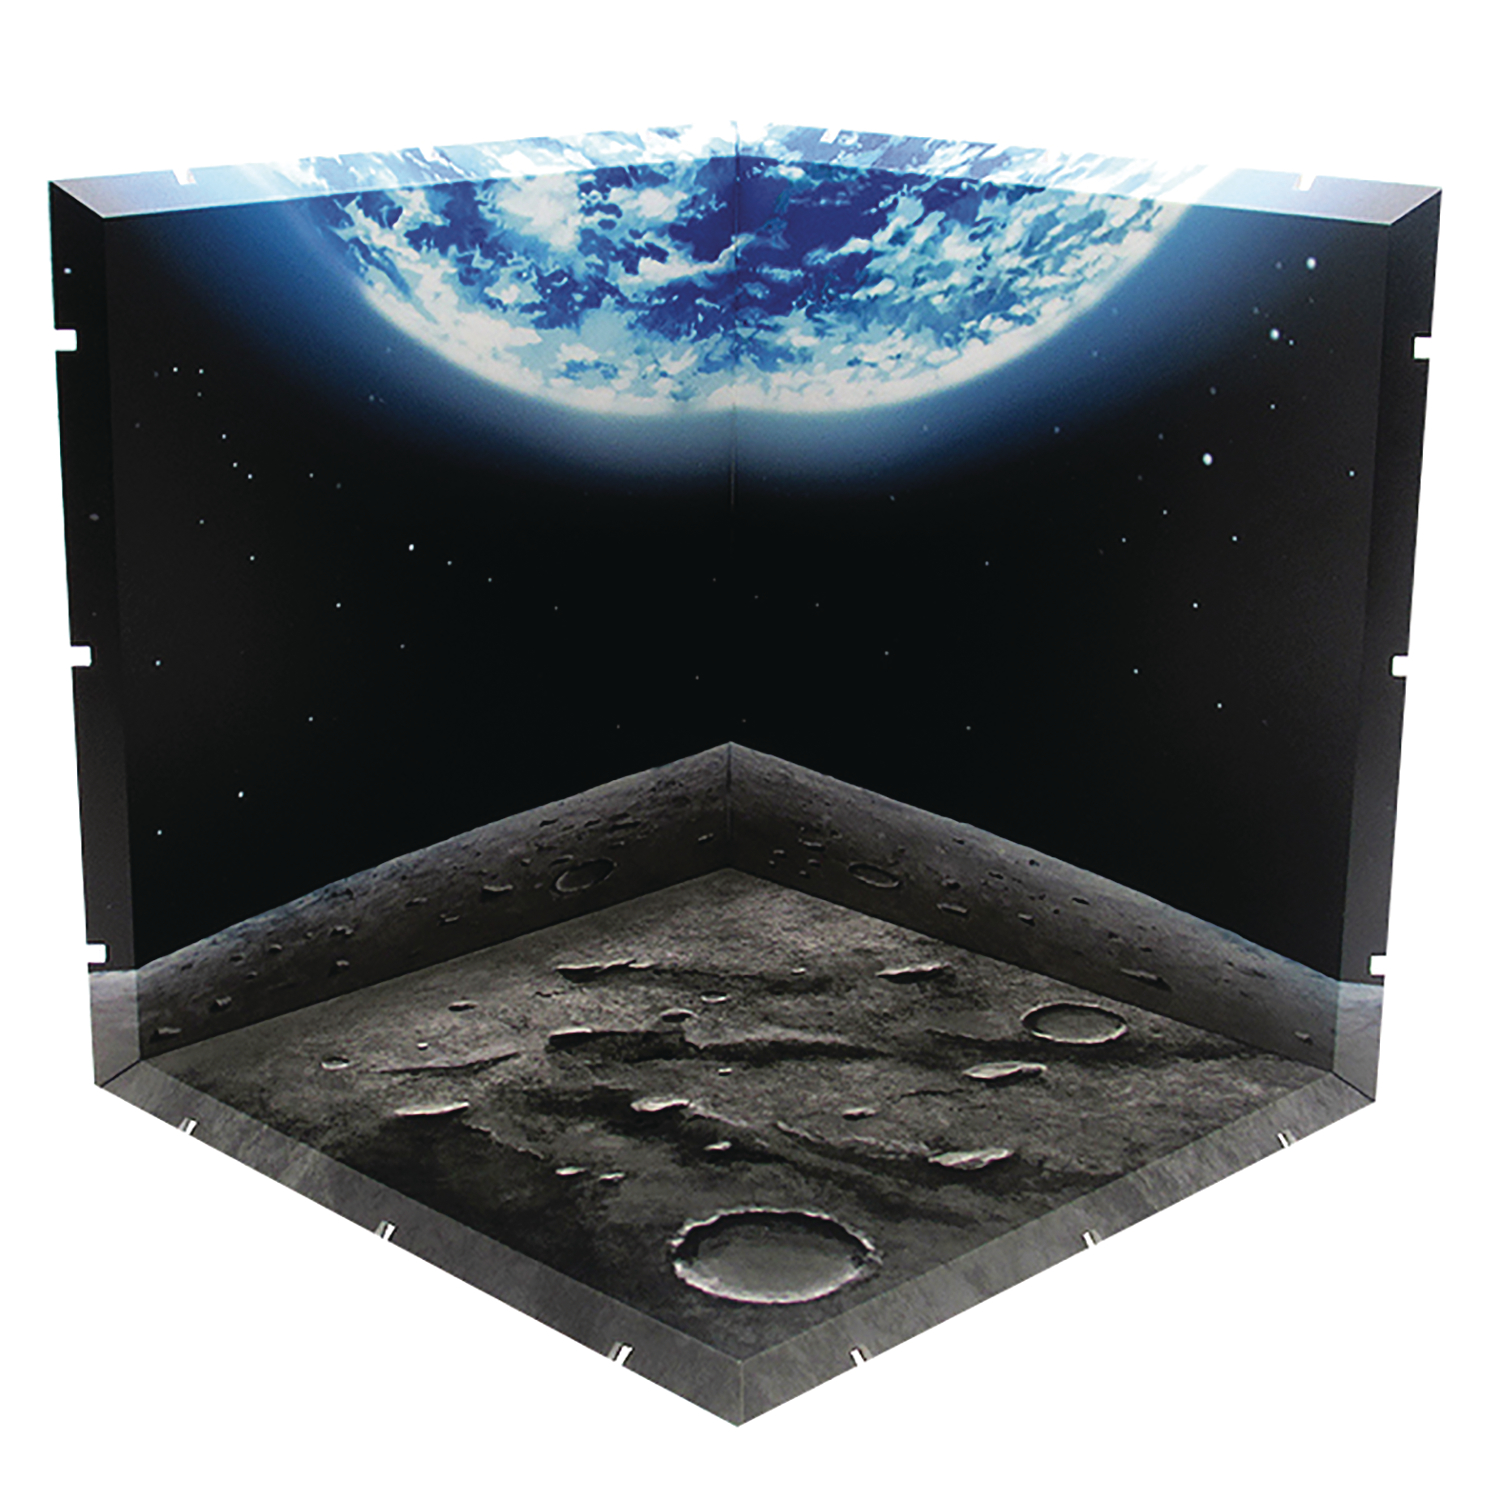 DIORAMANSION 150 SURFACE OF THE MOON FIGURE DIORAMA